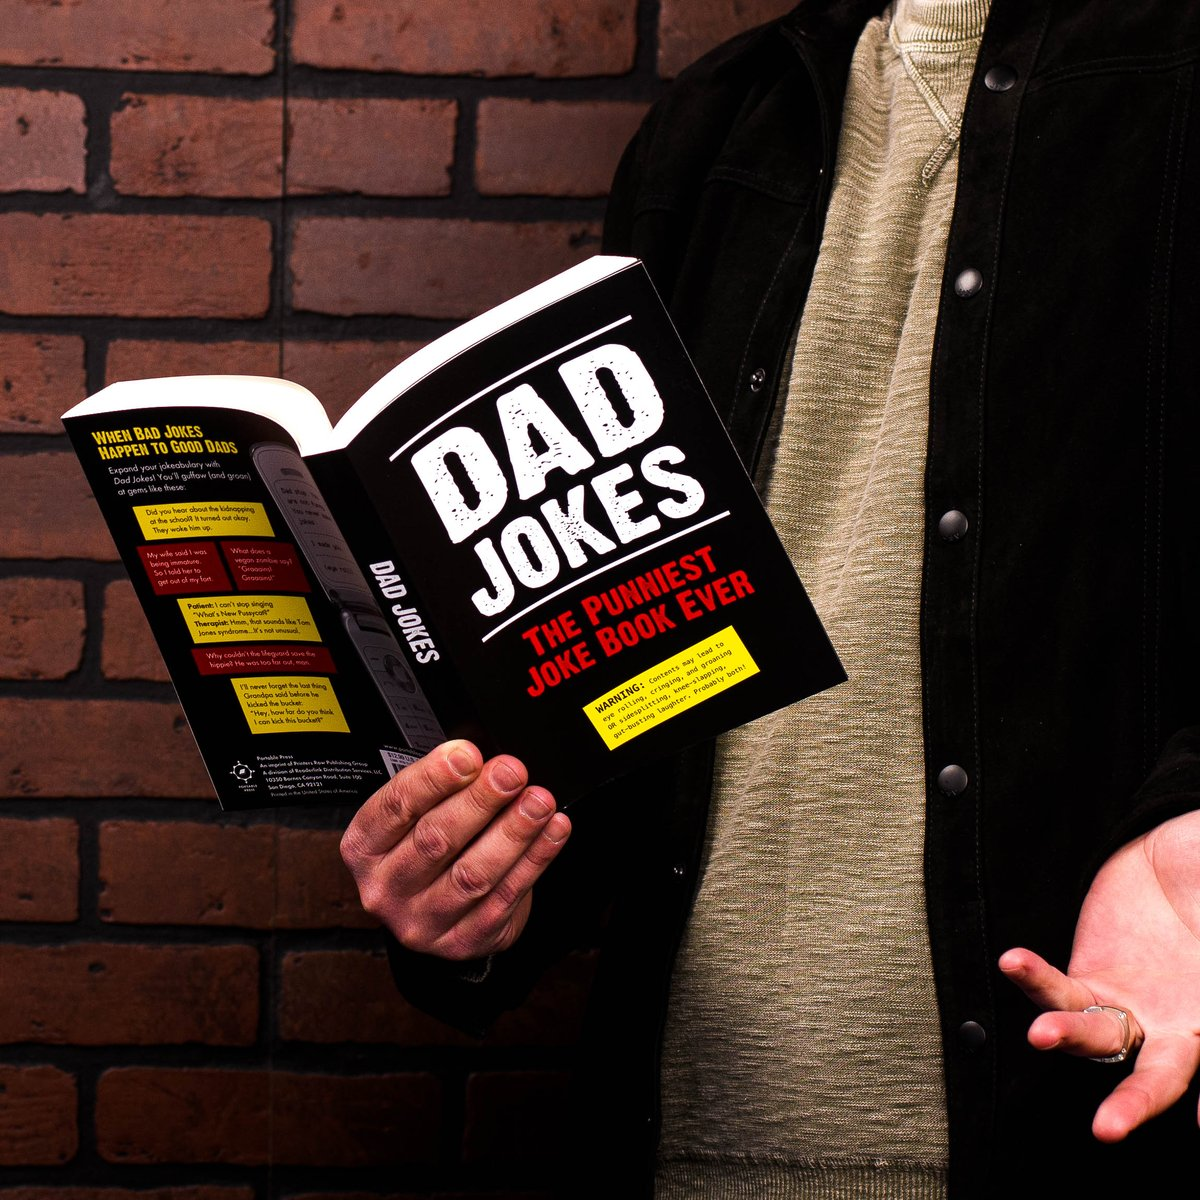 Father's Day is June 21st! Make sure dad never runs out of content with our Dad Jokes series: https://t.co/uGrDZEPX8U https://t.co/tKh2BdSlAU